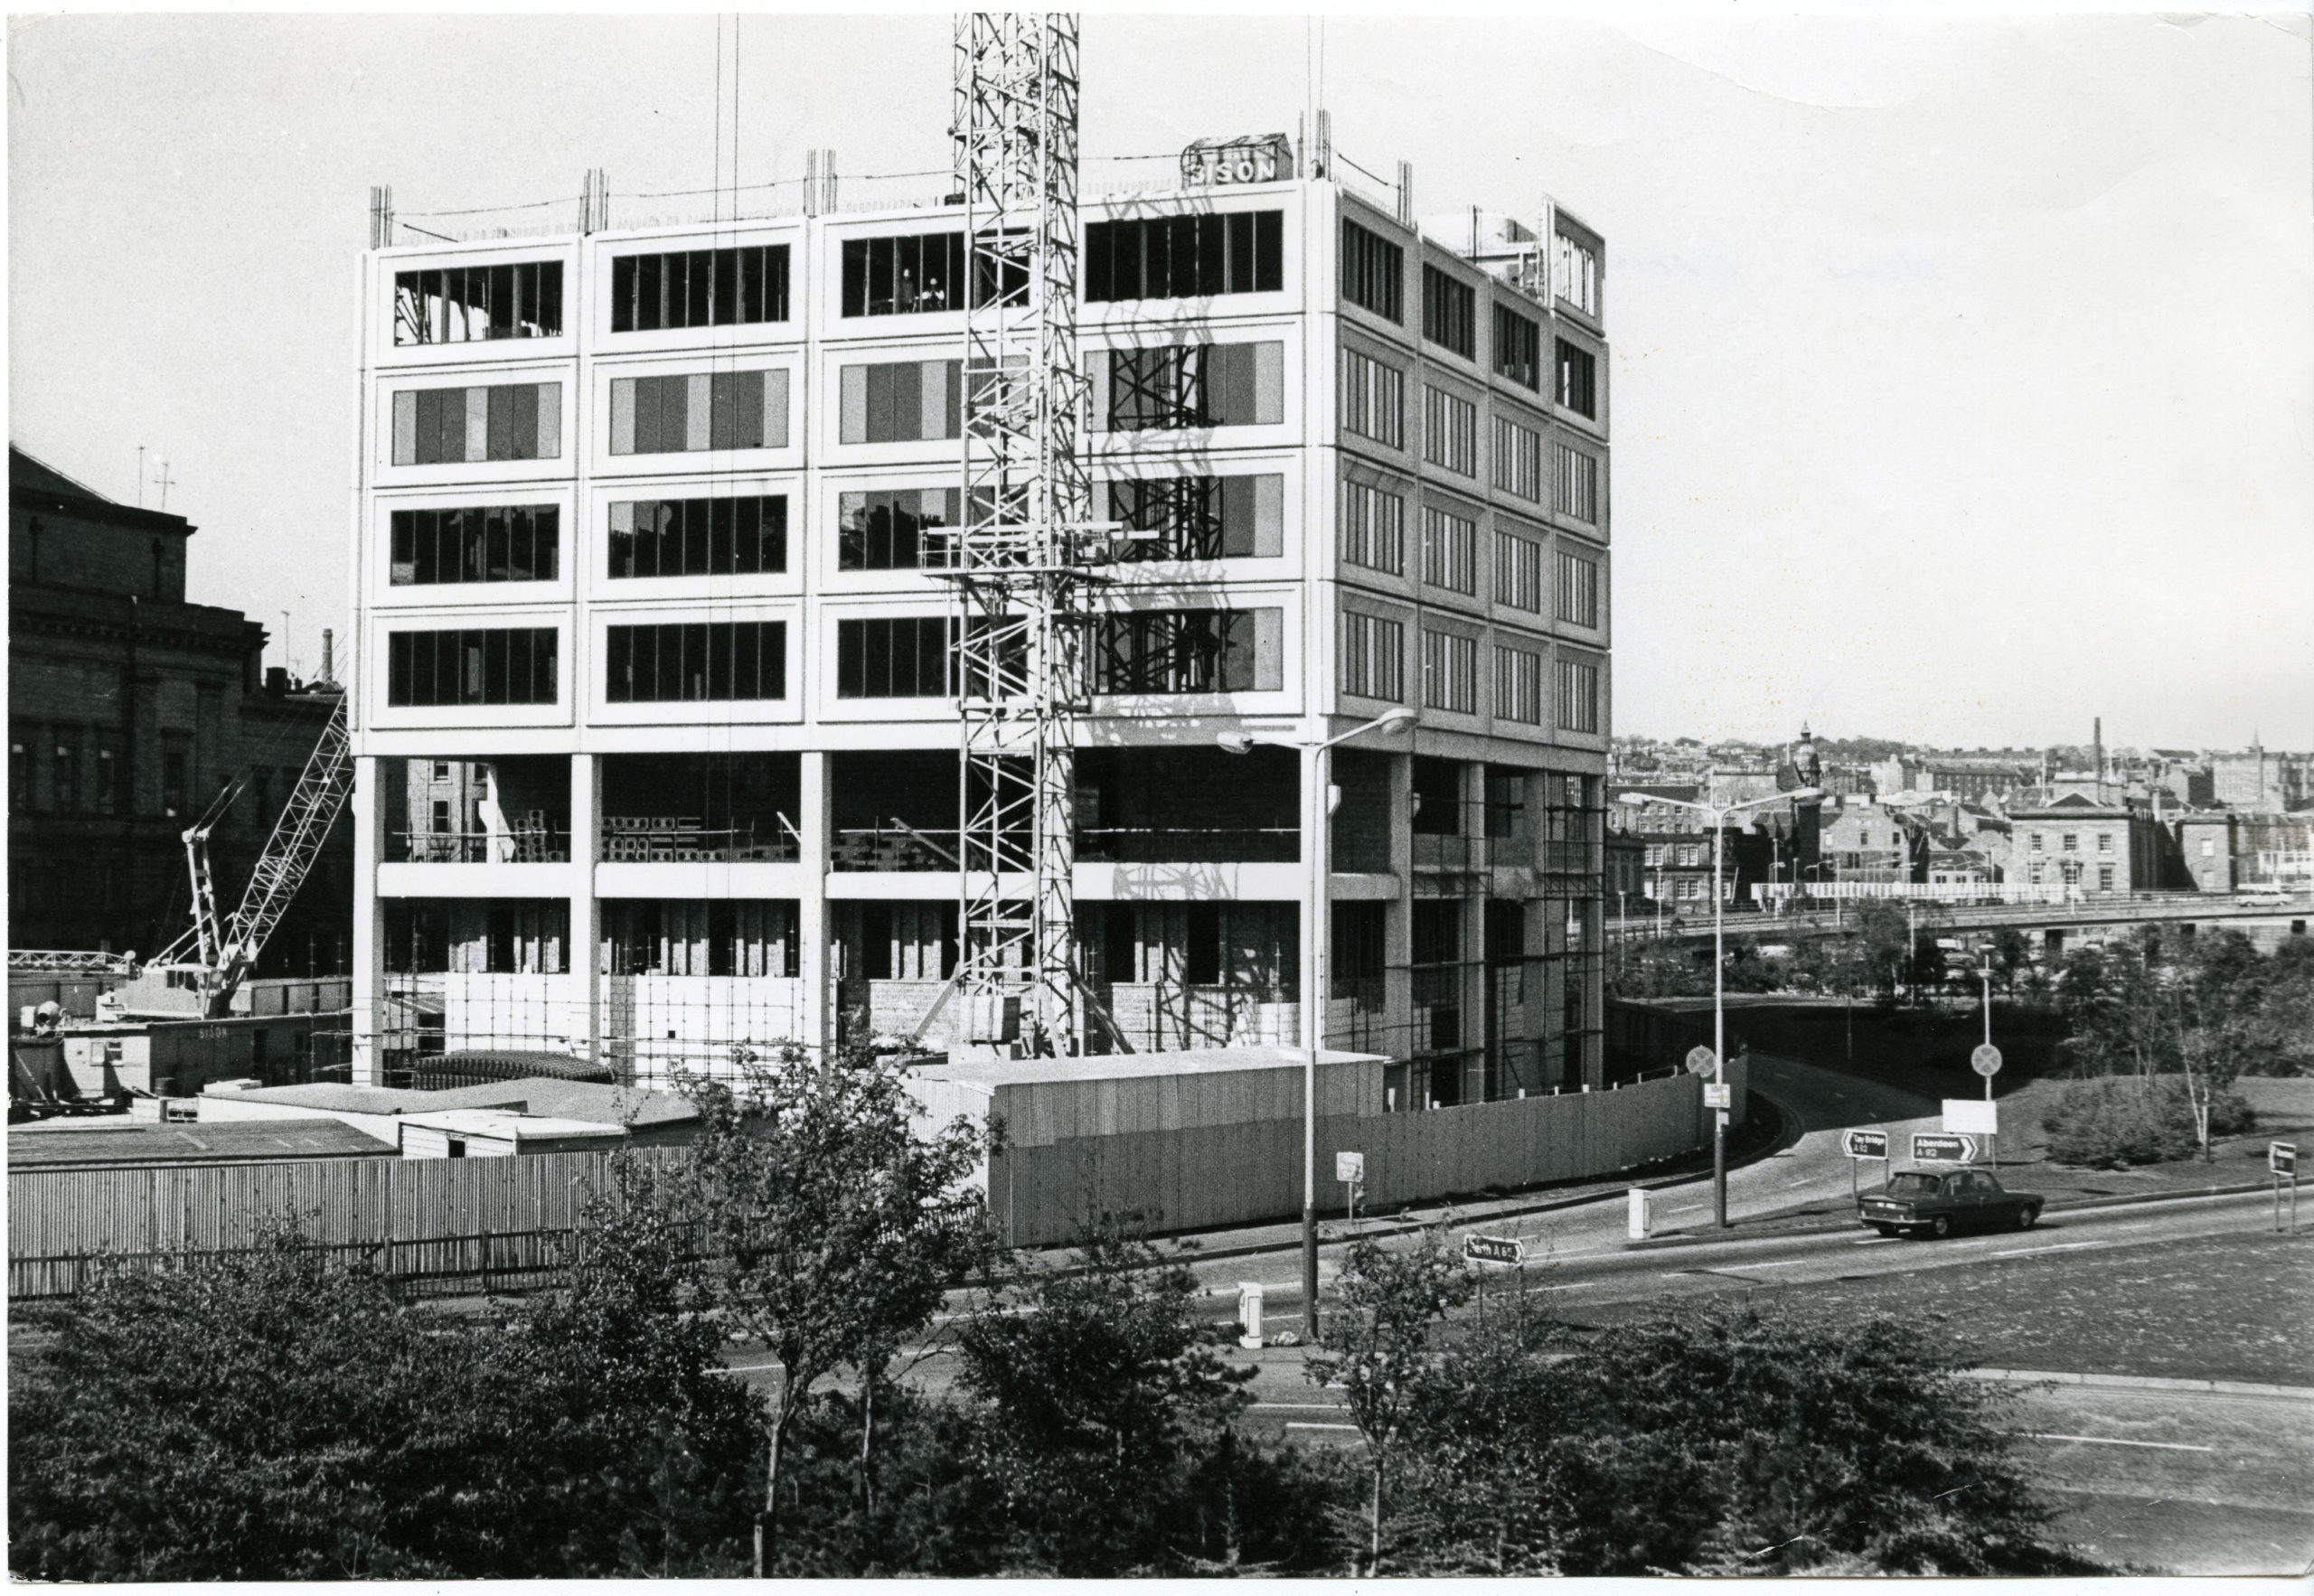 Tayside House being constructed.